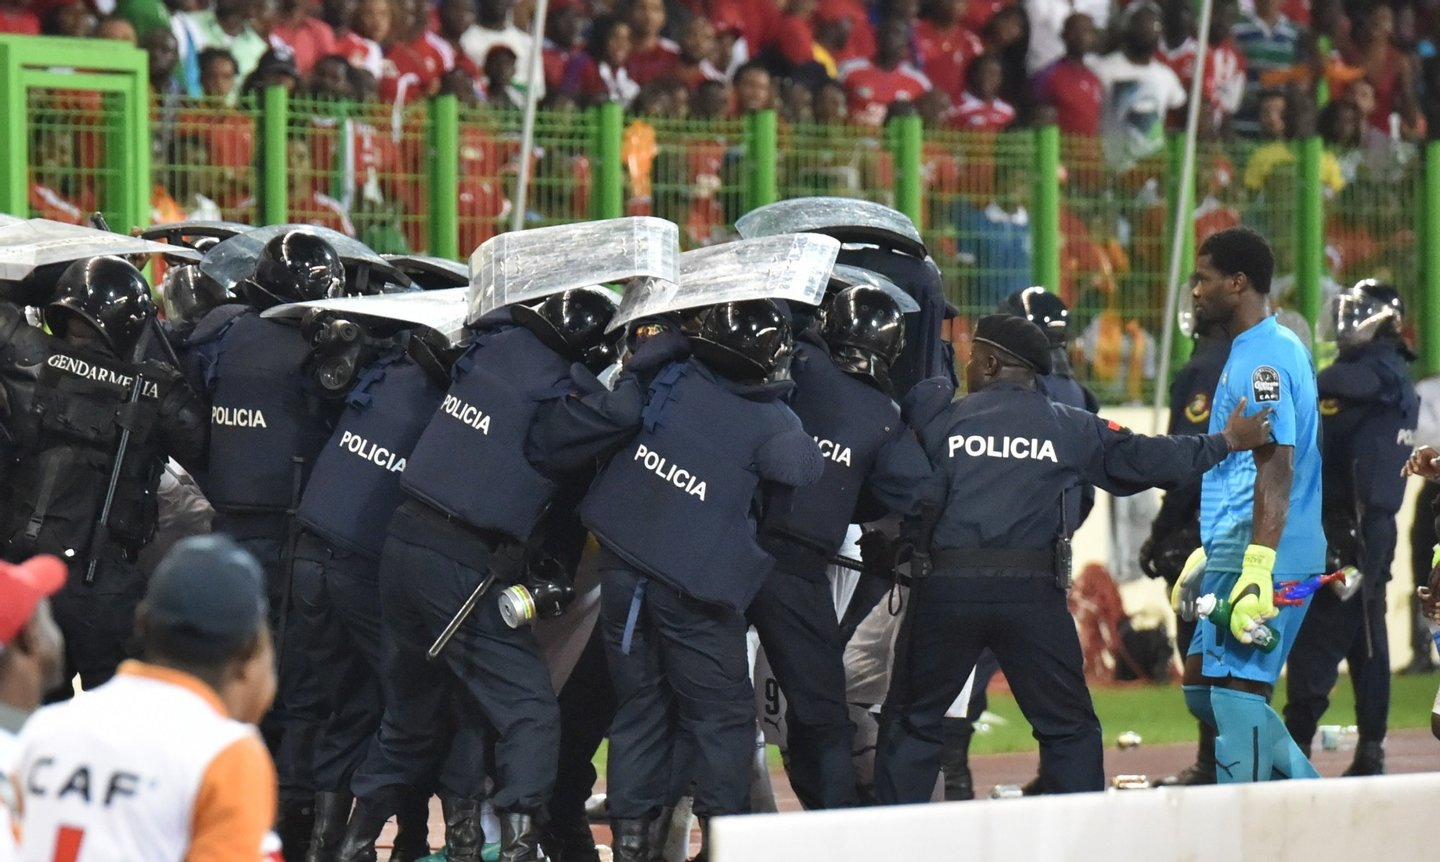 Ghana's national football team players leave the pitch protected by riot police at the half-time of the 2015 African Cup of Nations semi-final football match between Equatorial Guinea and Ghana in Malabo, on February 5, 2015. AFP PHOTO / ISSOUF SANOGO        (Photo credit should read ISSOUF SANOGO/AFP/Getty Images)